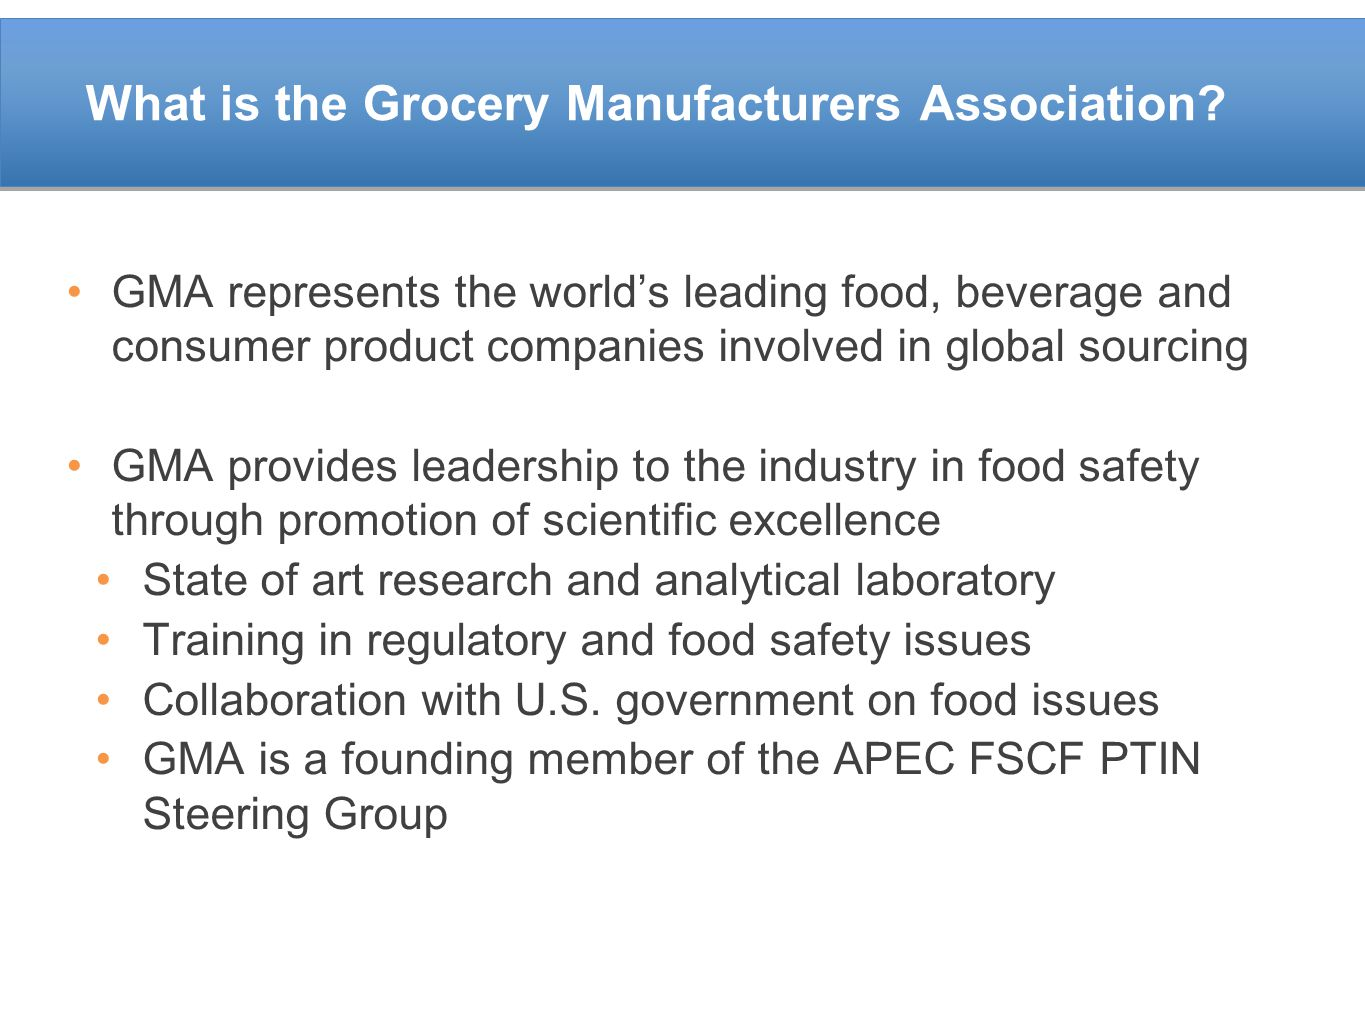 What is the Grocery Manufacturers Association